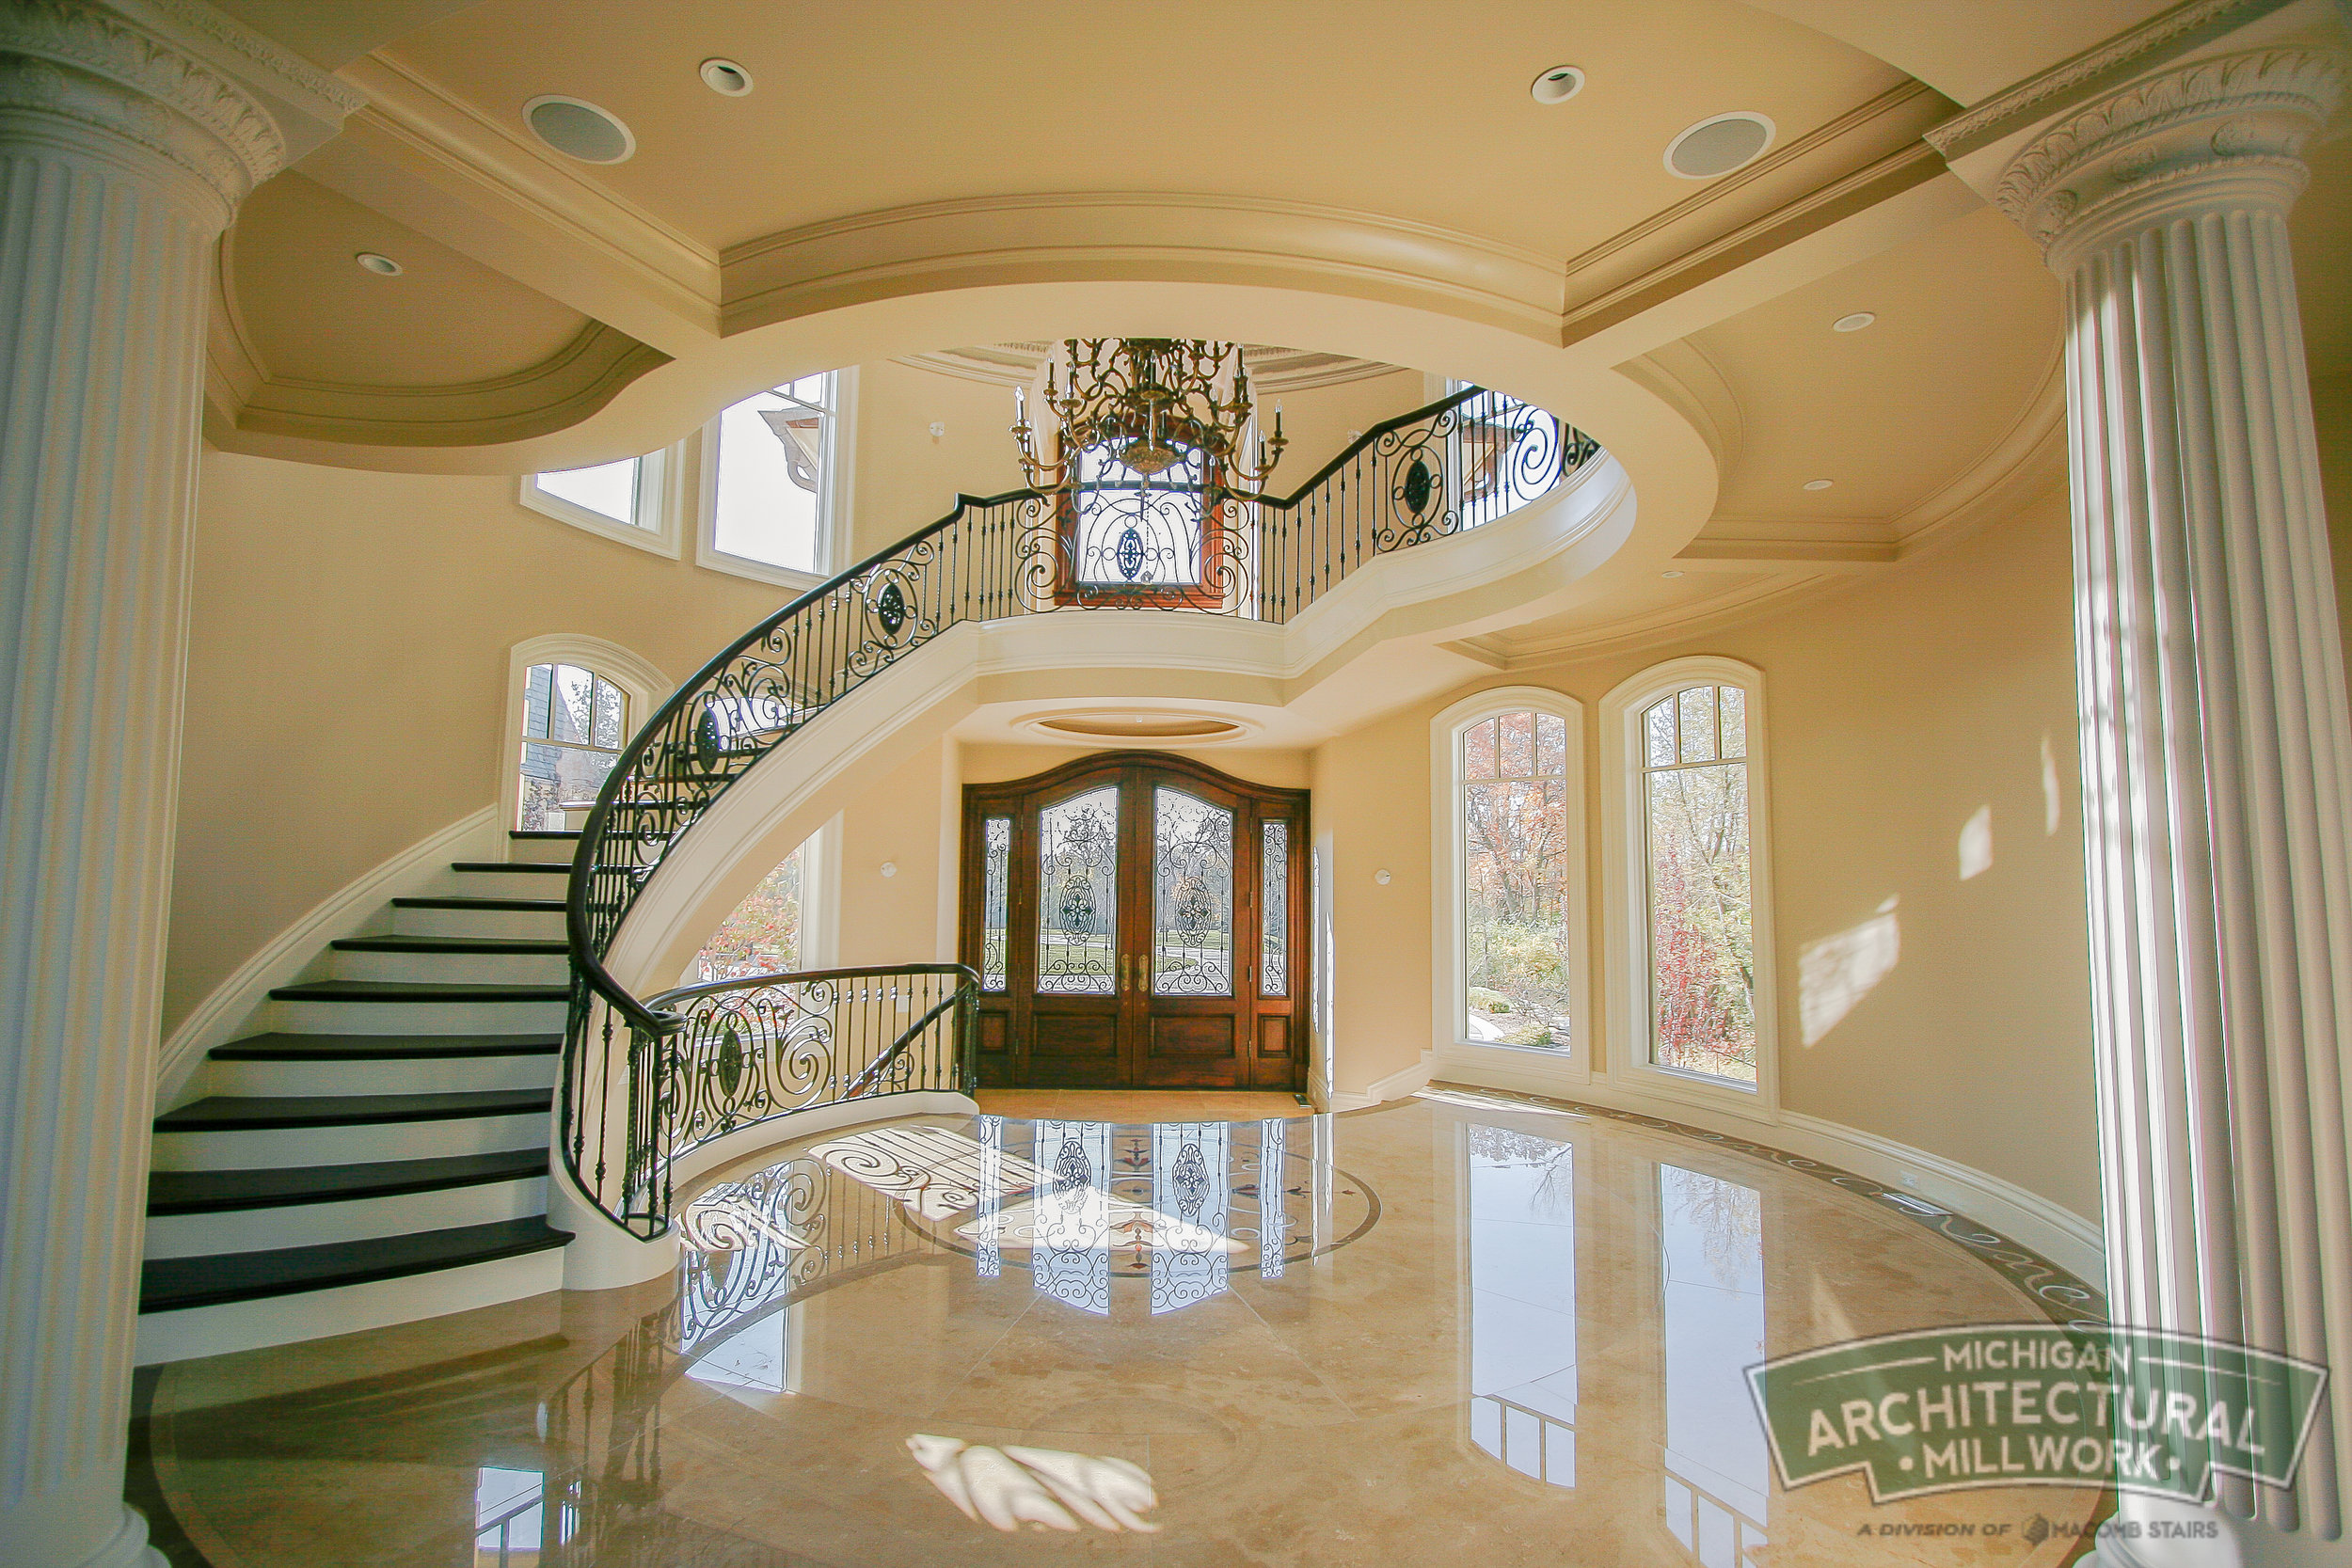 Michigan Architectural Millwork- Moulding and Millwork Photo-131.jpg